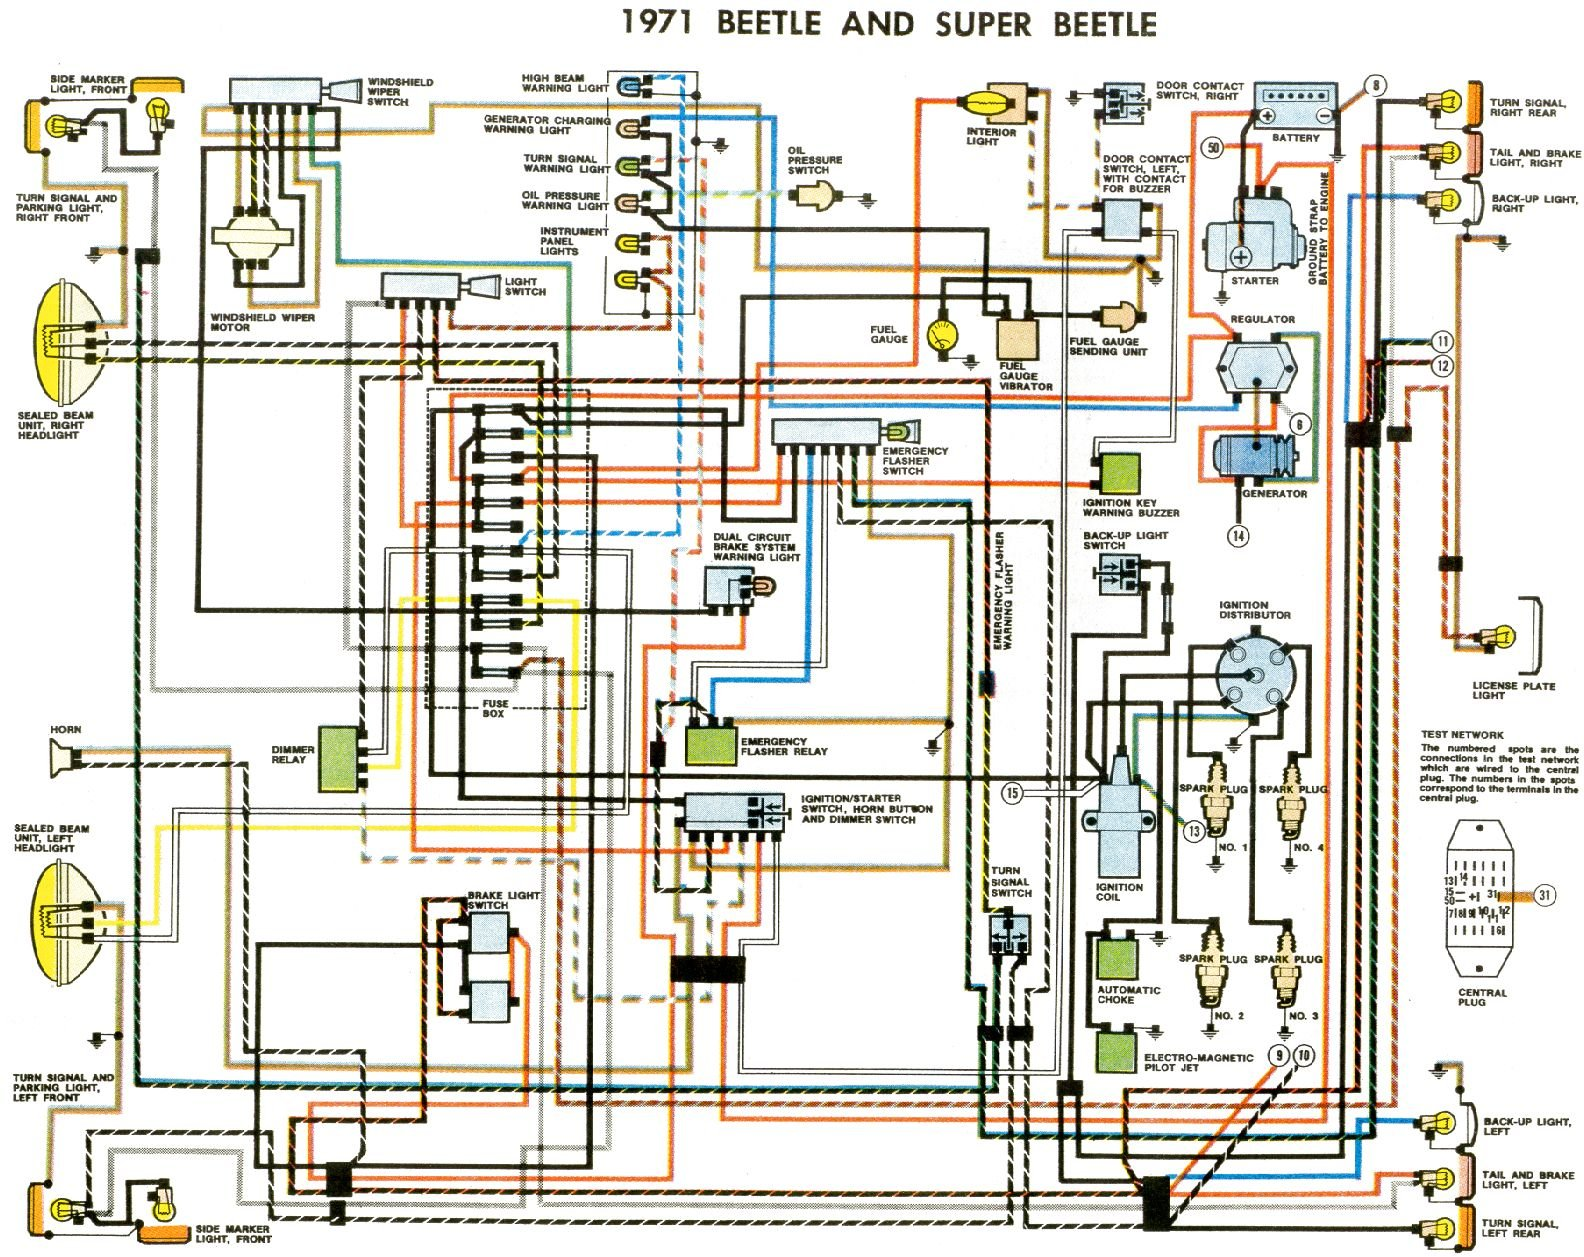 bug_71 1971 beetle wiring diagram (usa) thegoldenbug com 1969 bug wiring diagram at creativeand.co